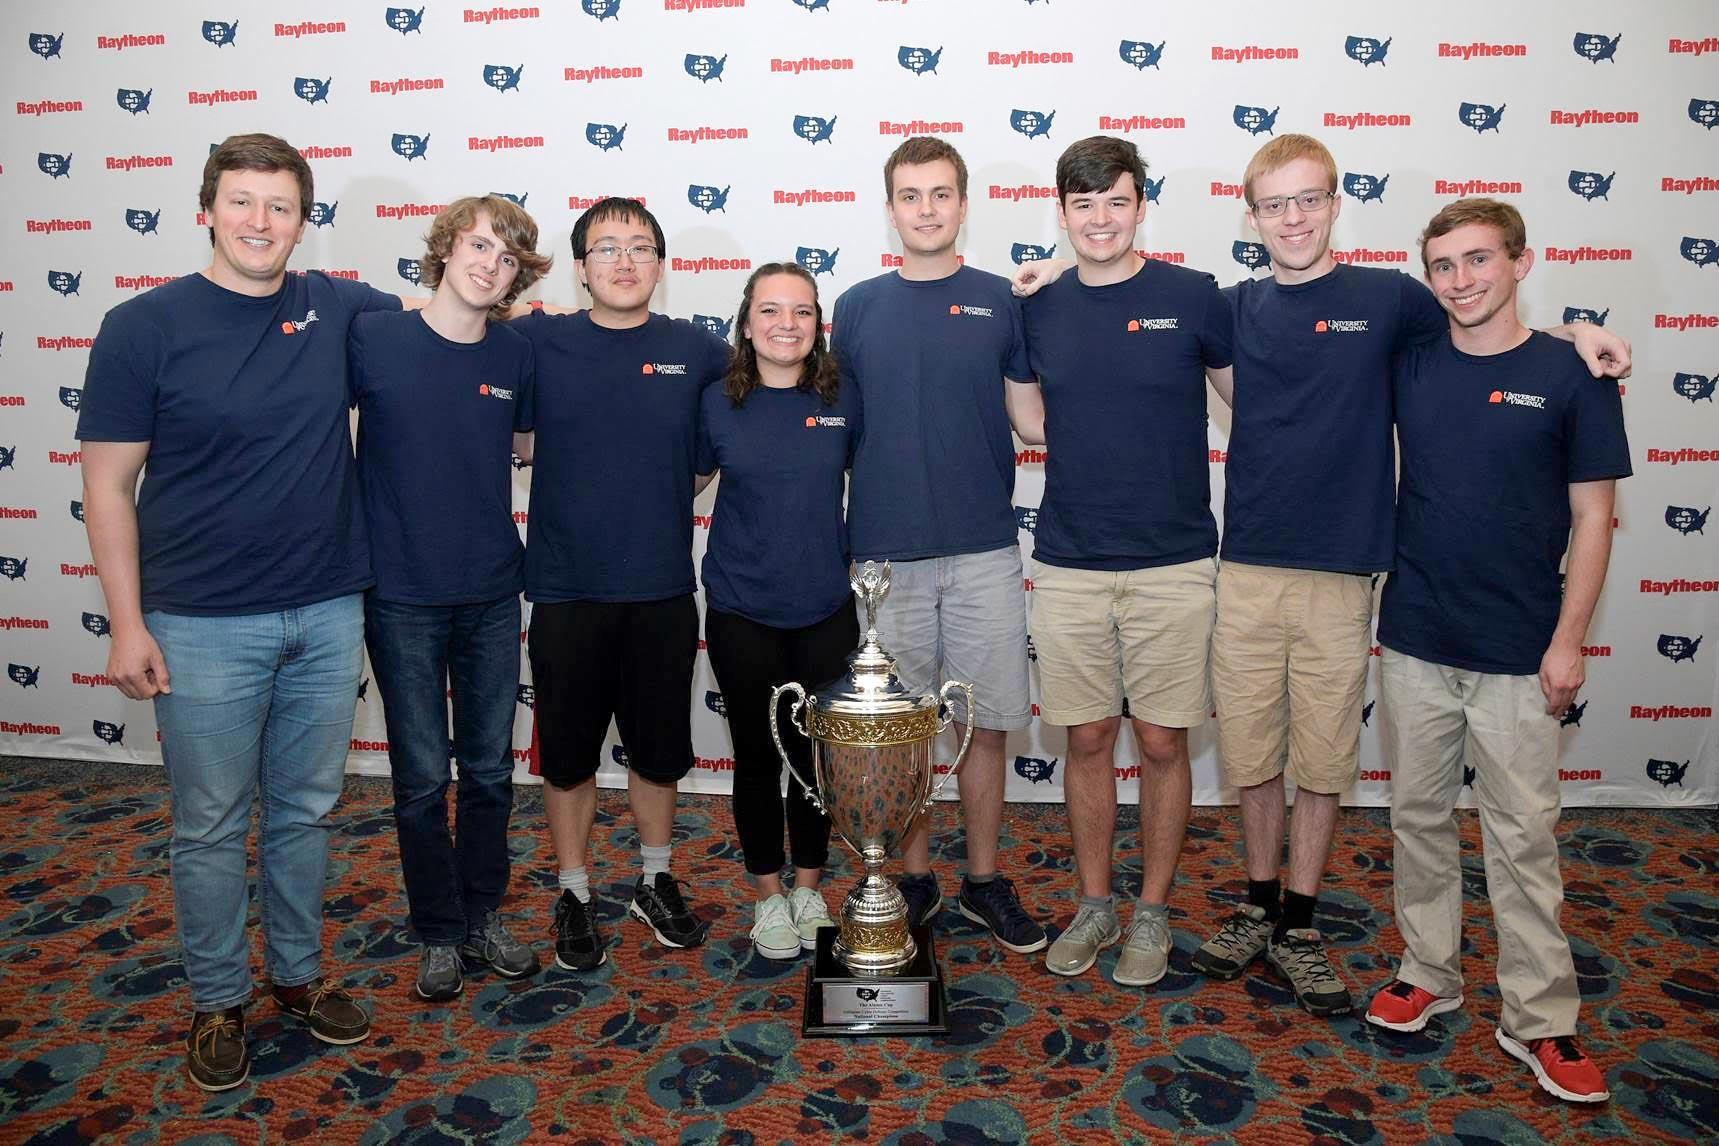 UVA's Cyber Defense Team, consisting of, from left, students Jack Verrier, Calvin Krist, Daniel Chen, Mariah Kenny, Roman Bohuk, Conner Steenrod, Jake Smith and Jack McDowell, celebrates their win.